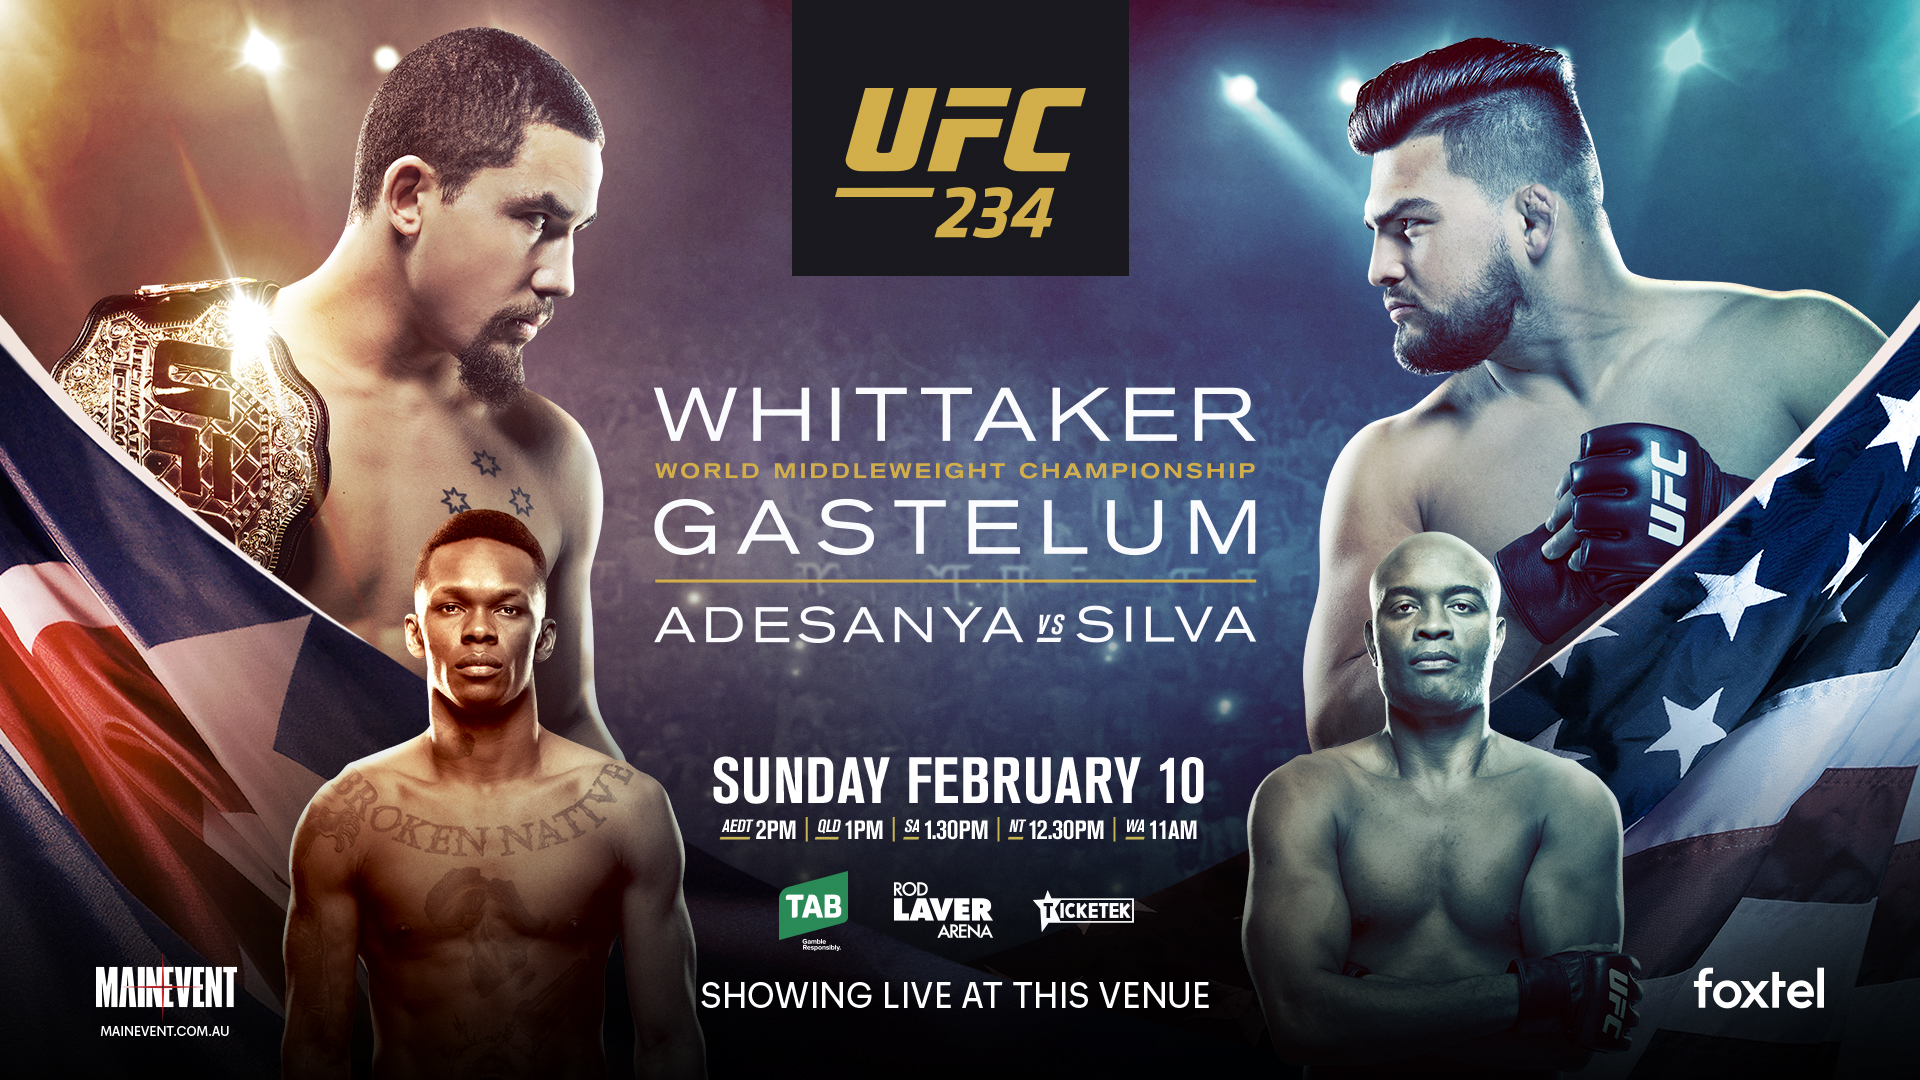 Watch UFC 234 at the Pit Bar